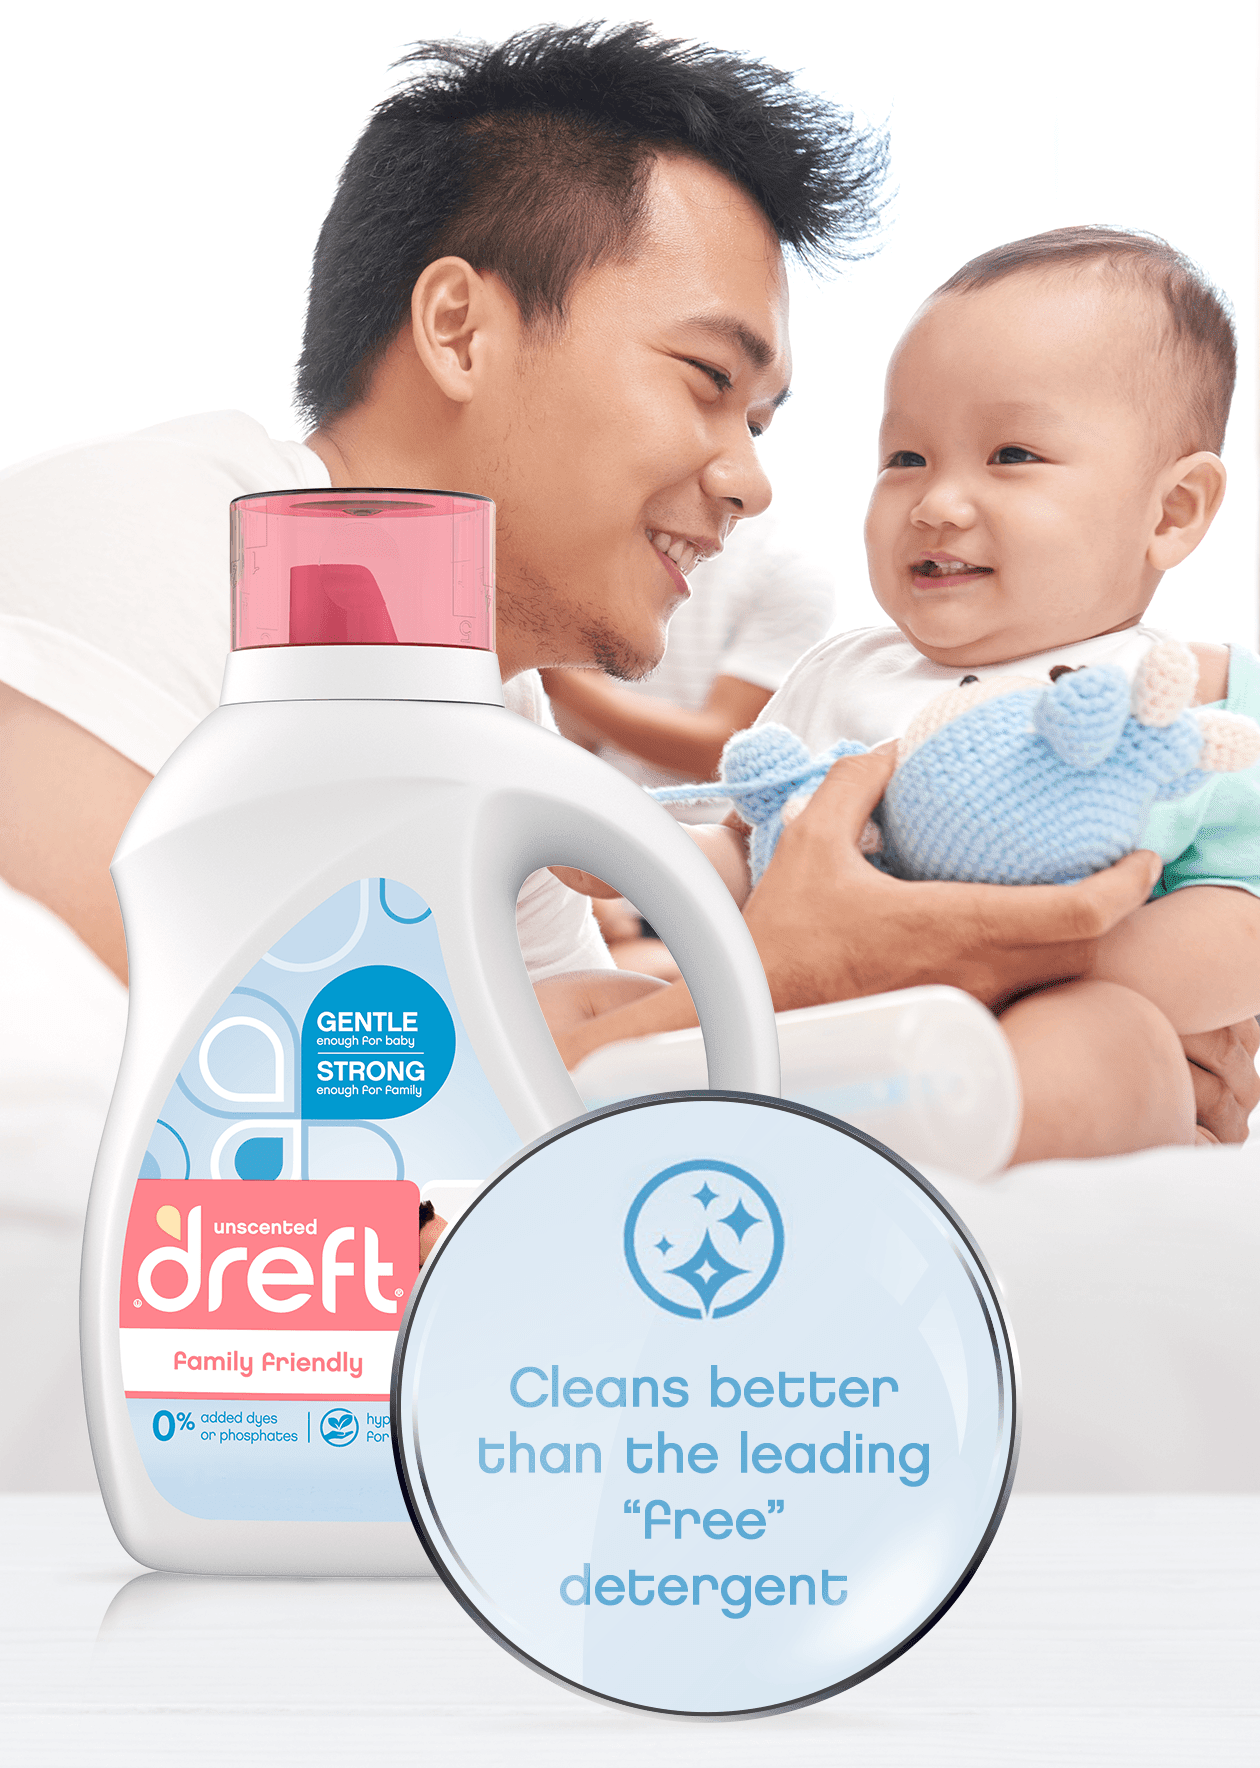 Dreft Family Friendly Laundry Detergent has even more cleaning power!